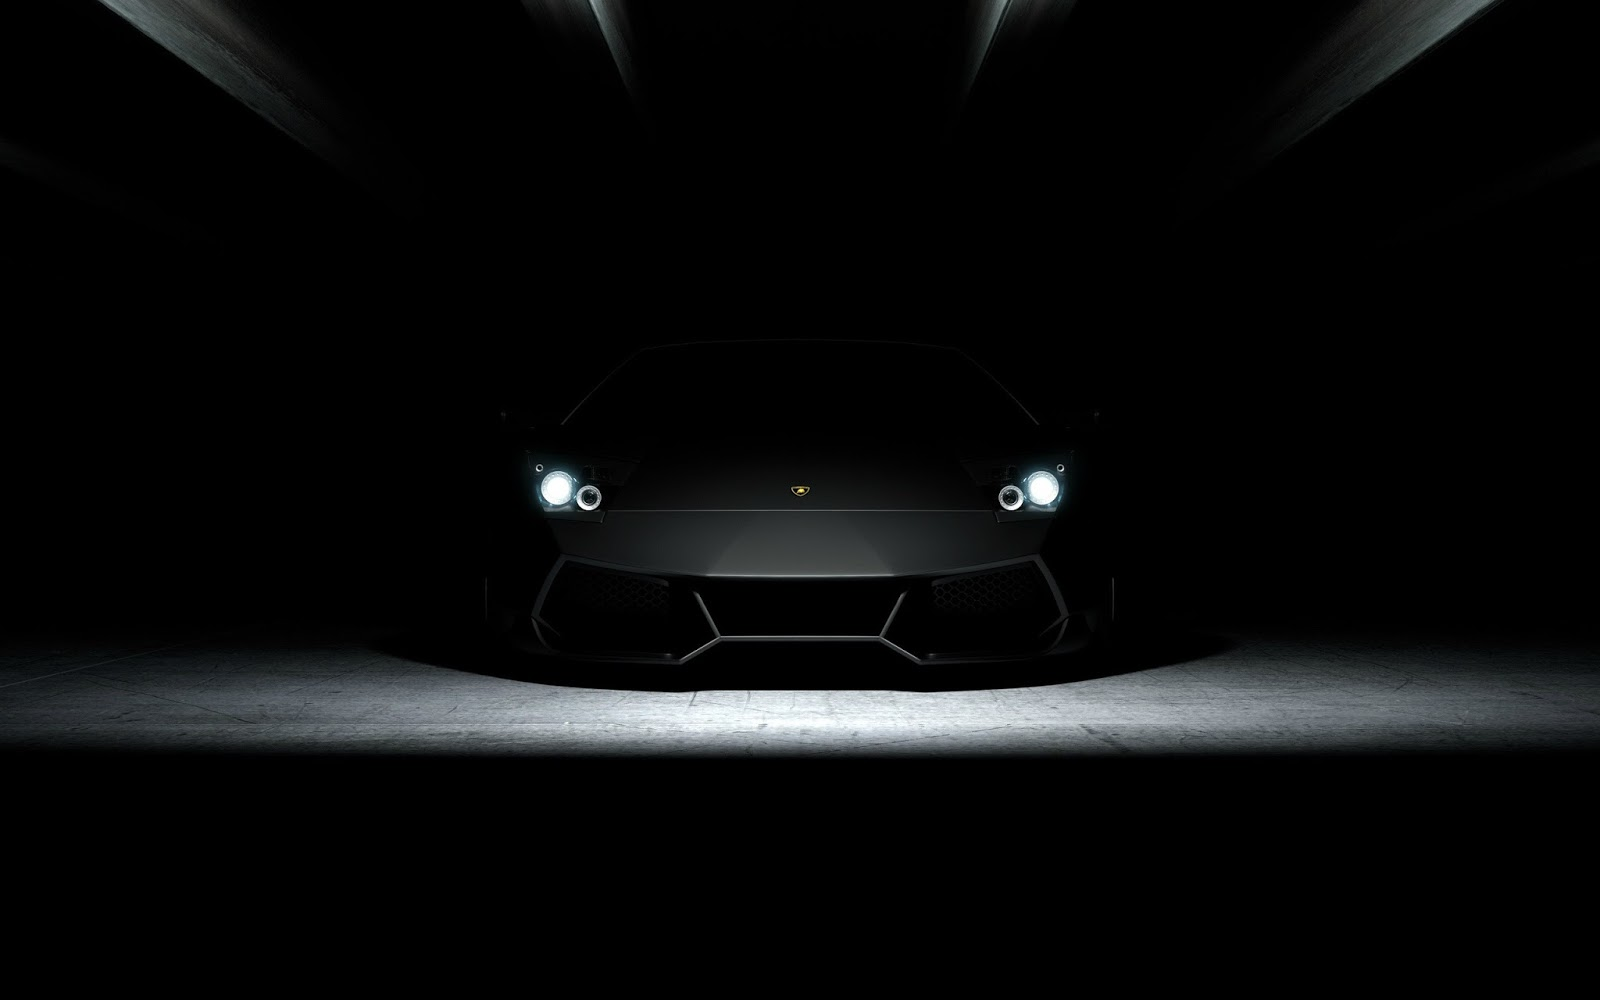 Black and White Wallpapers